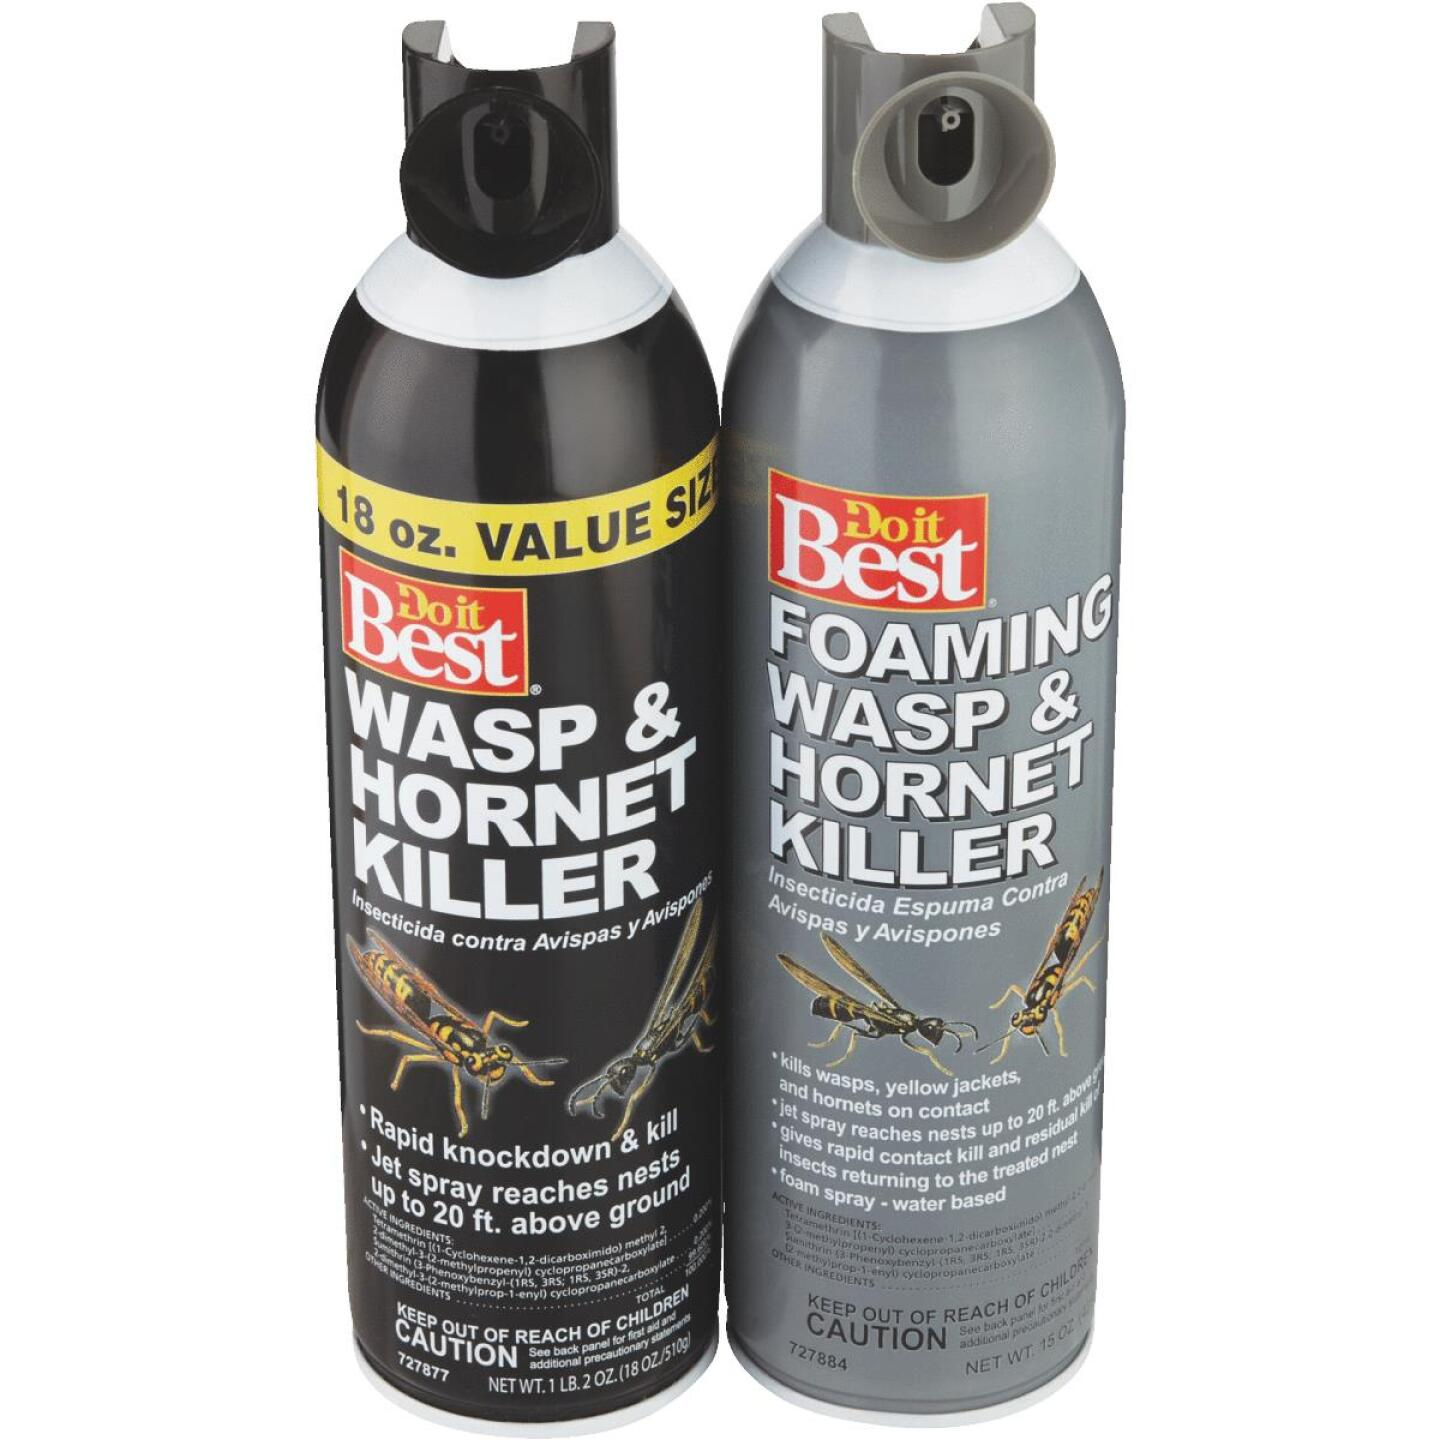 Do it Best 17.5 Oz. Liquid Aerosol Spray Wasp & Hornet Killer Image 3